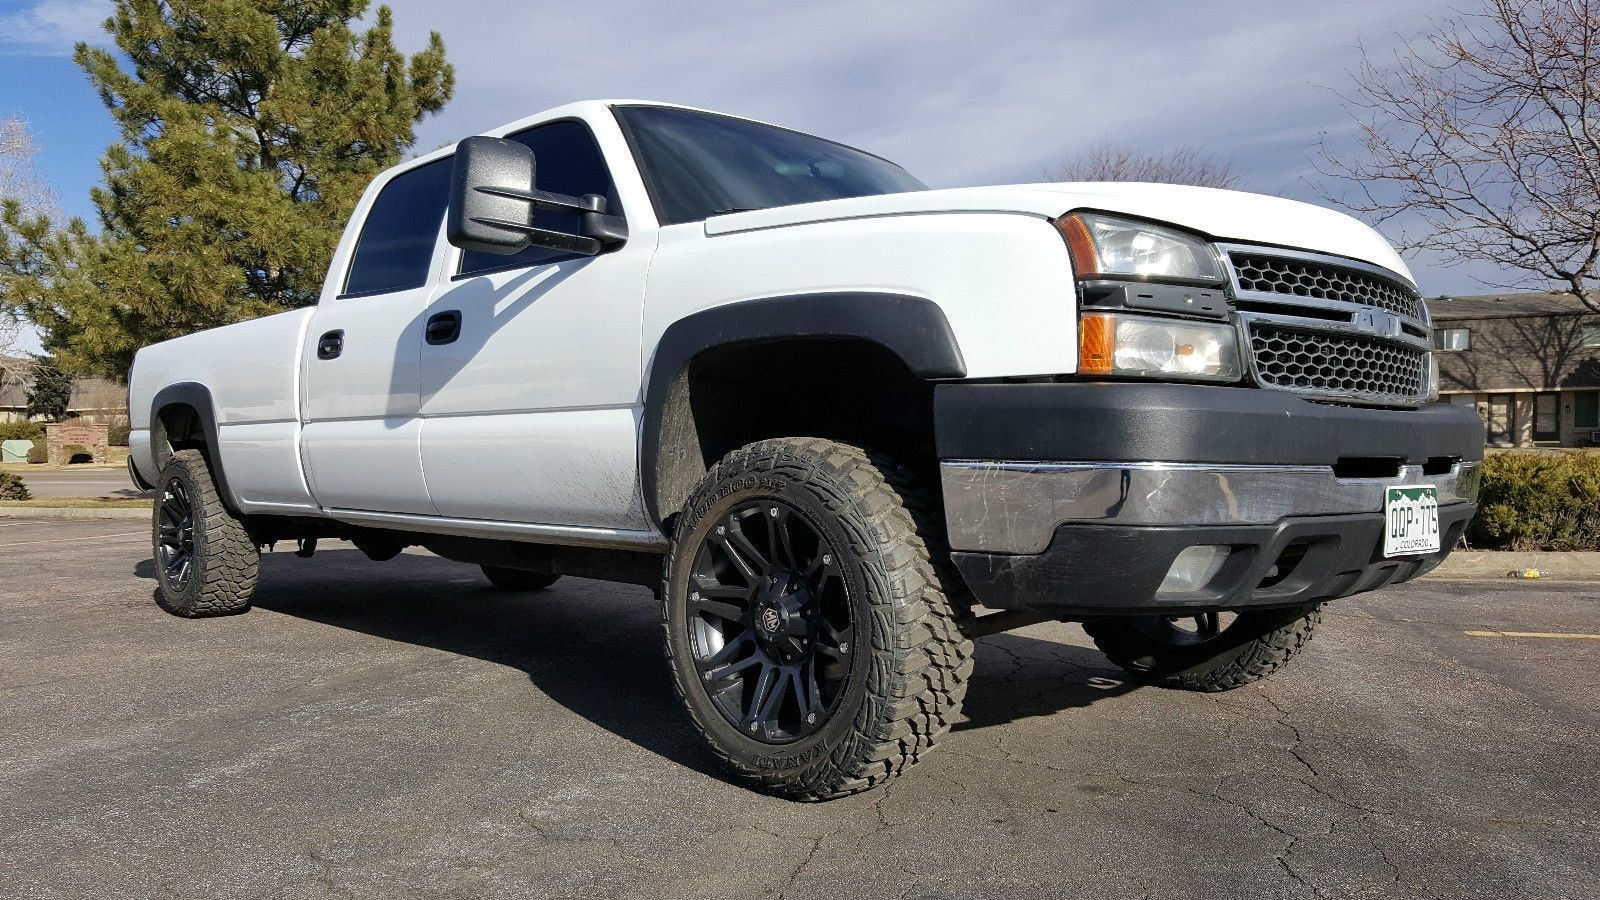 Silverado 2004 chevy silverado 4×4 extended cab for sale : 2006 Chevy Silverado 2500hd 6.0 Auto Crew Cab Longbed 4×4 Lift Kit ...